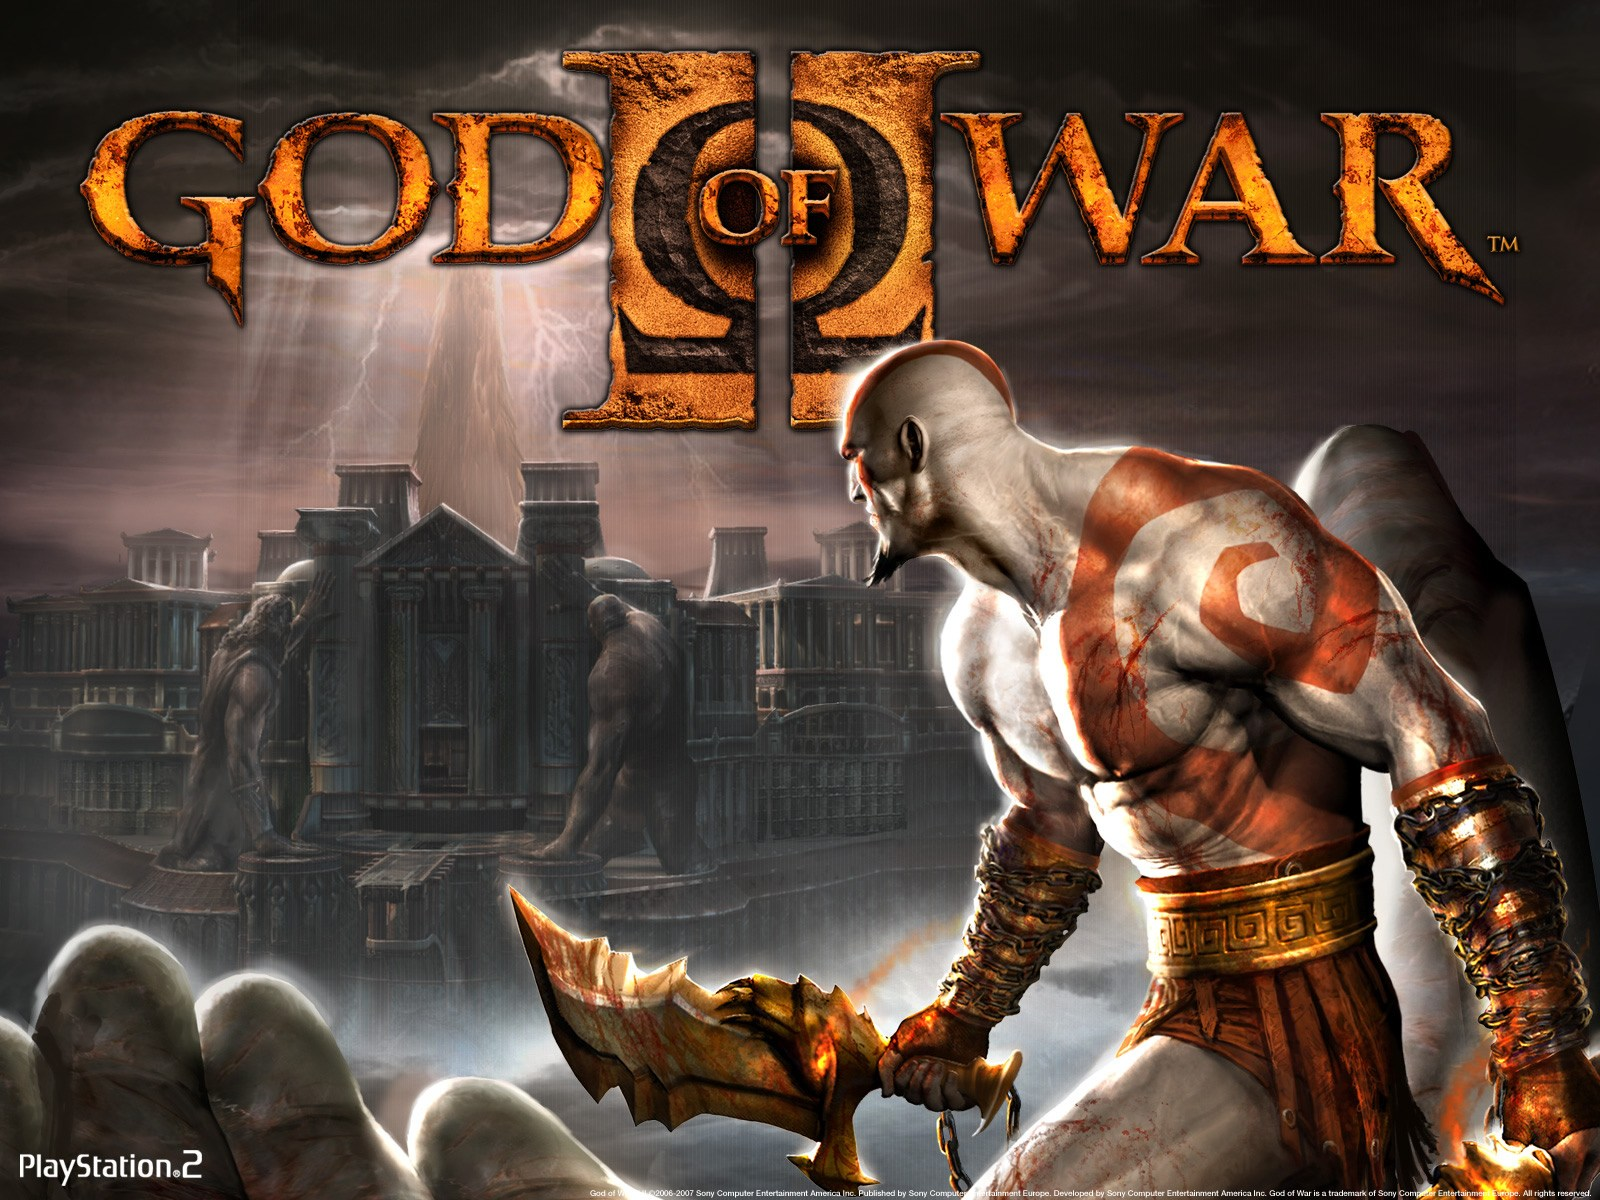 Best Games and Gamers: (PS2 and PS3) God of War 1, 2, 3 and 4 MA15+god of war 